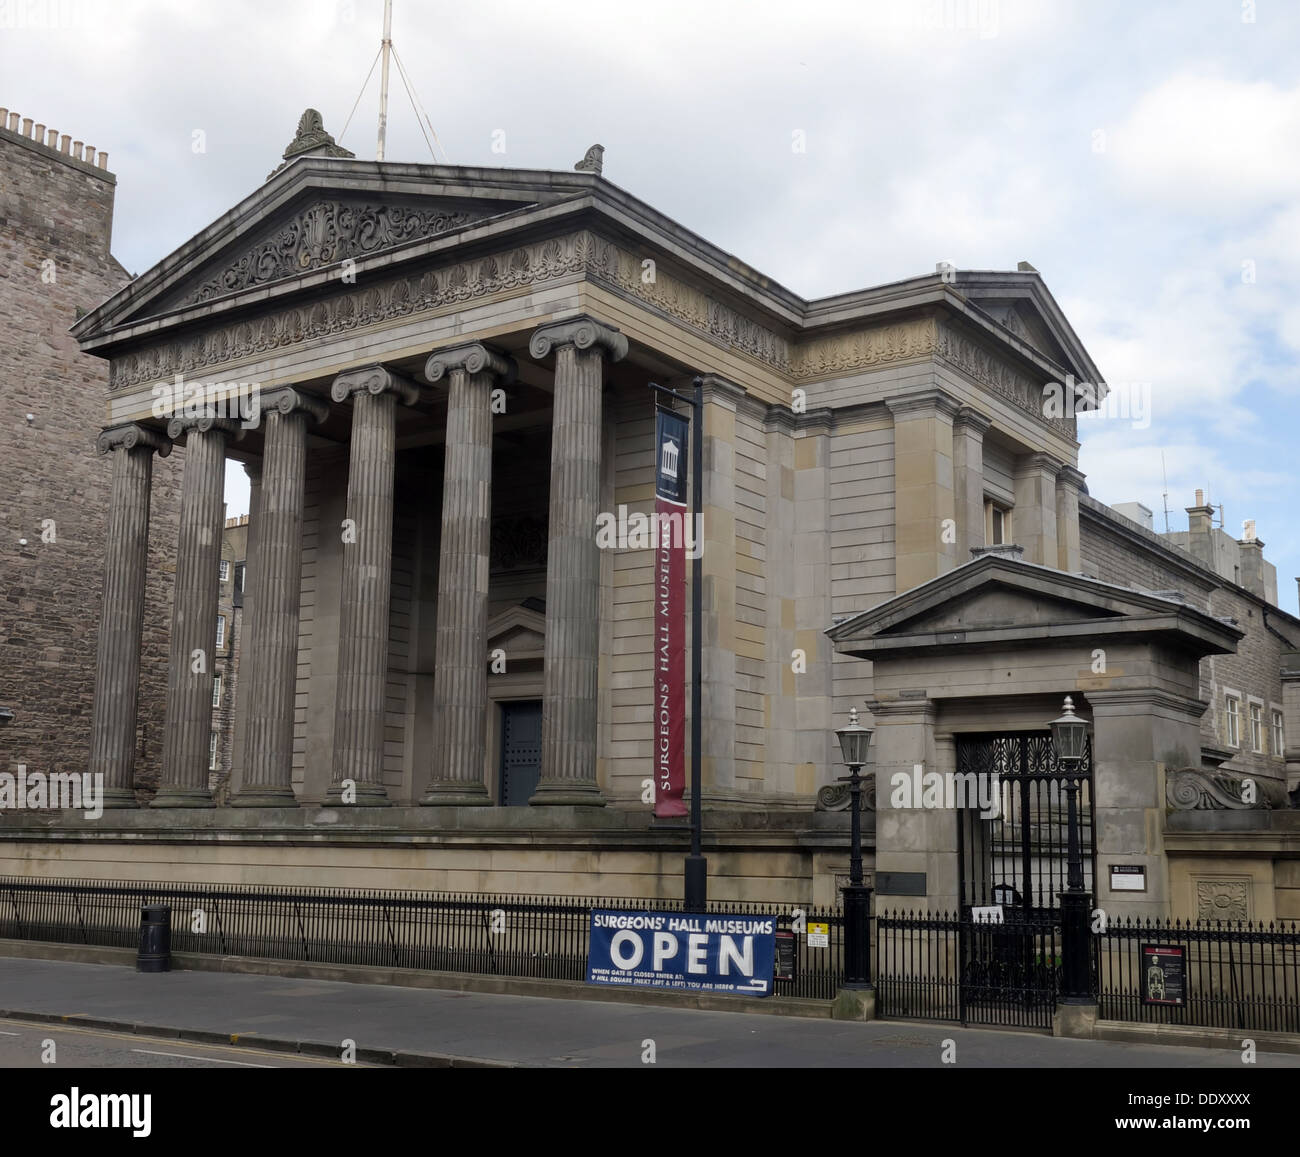 Surgeons Hall, Edinburgh, Scotland, UK - Stock Image